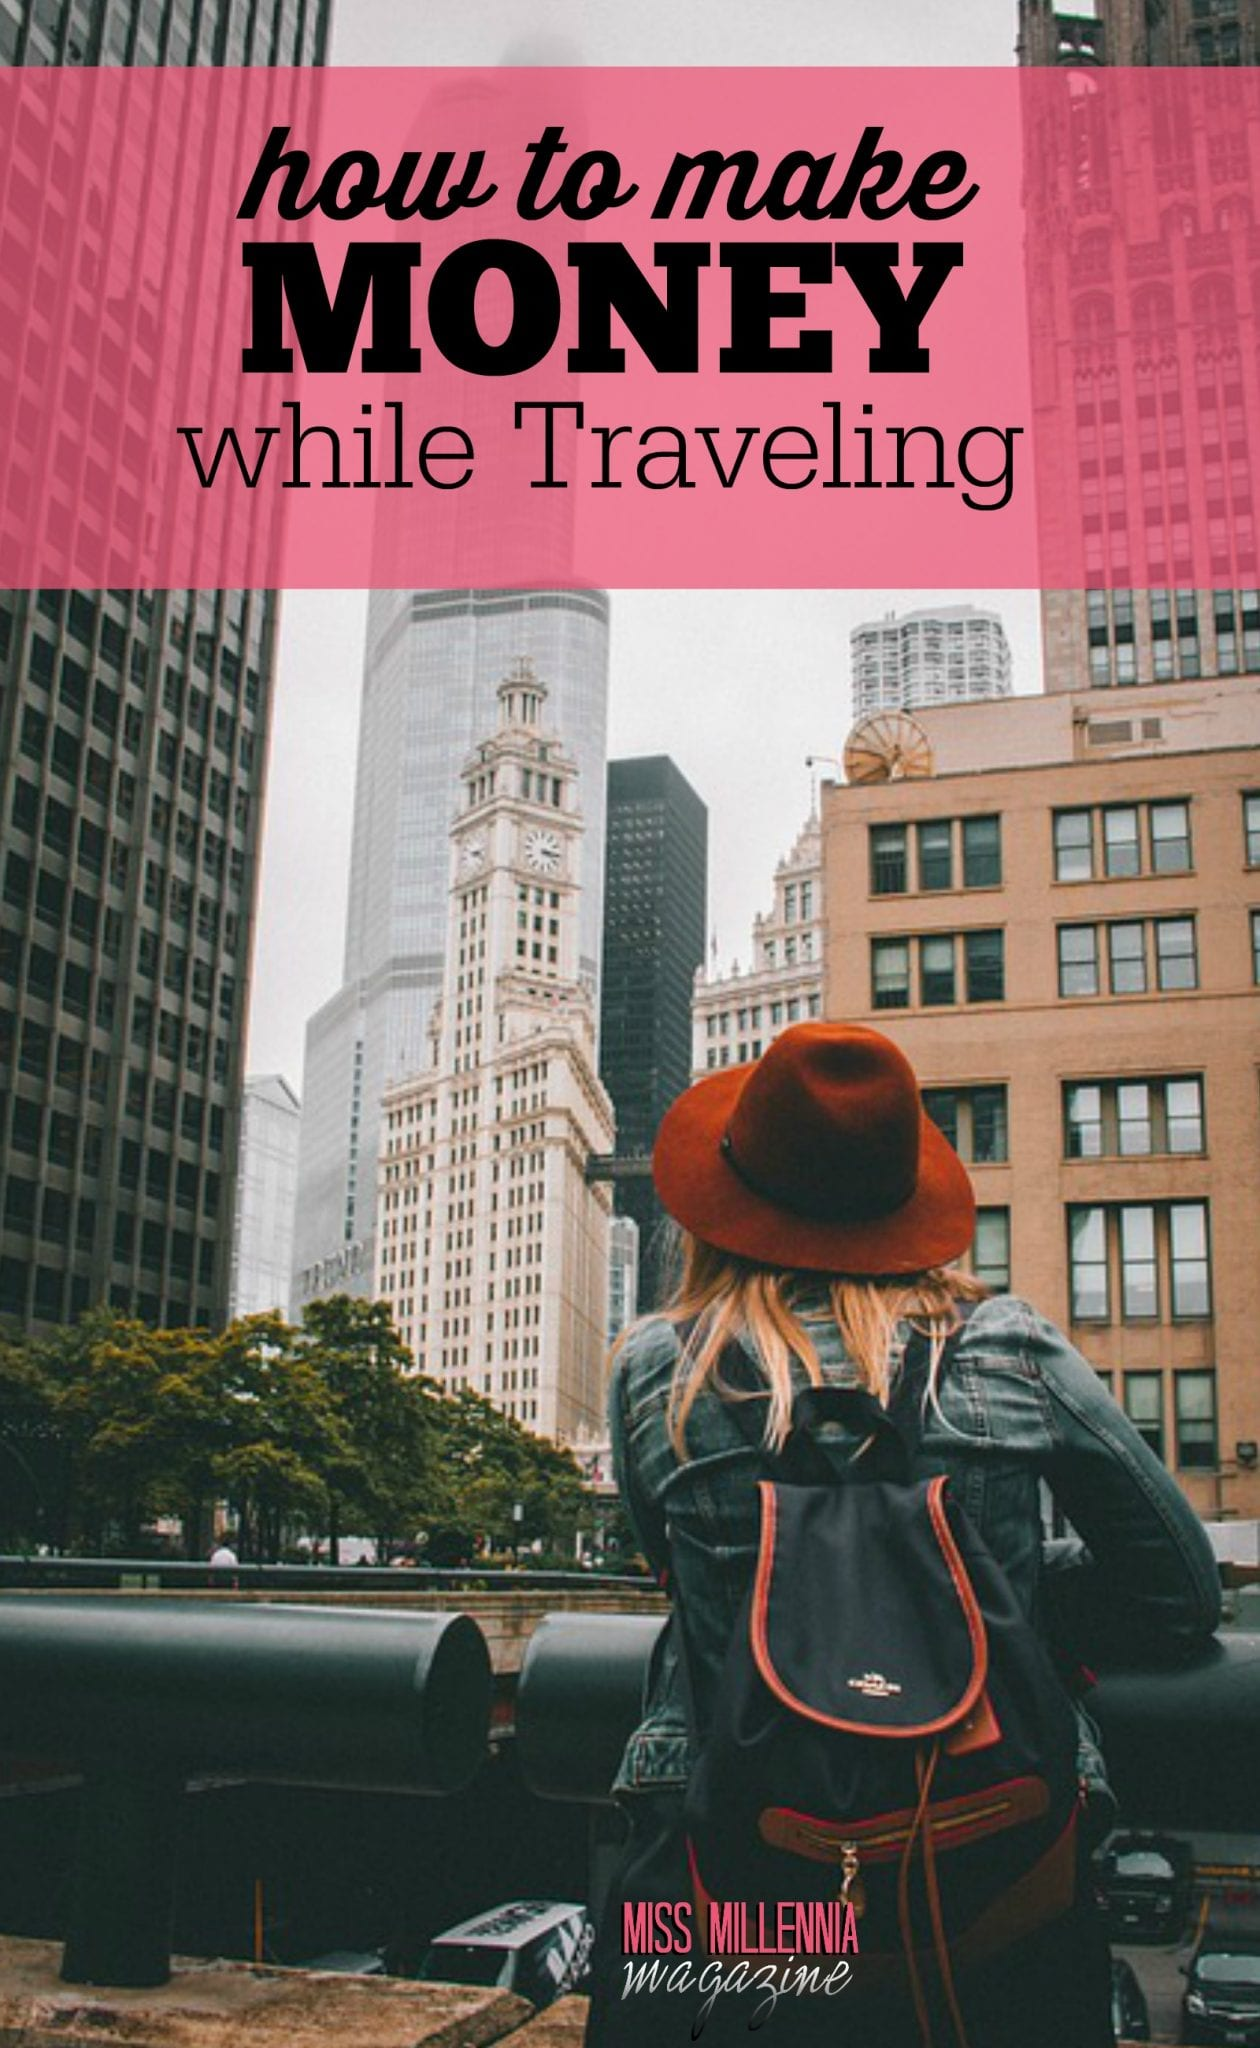 Working while traveling has more benefits: It allows for making new friends in distant places. Here are some ways to do so.